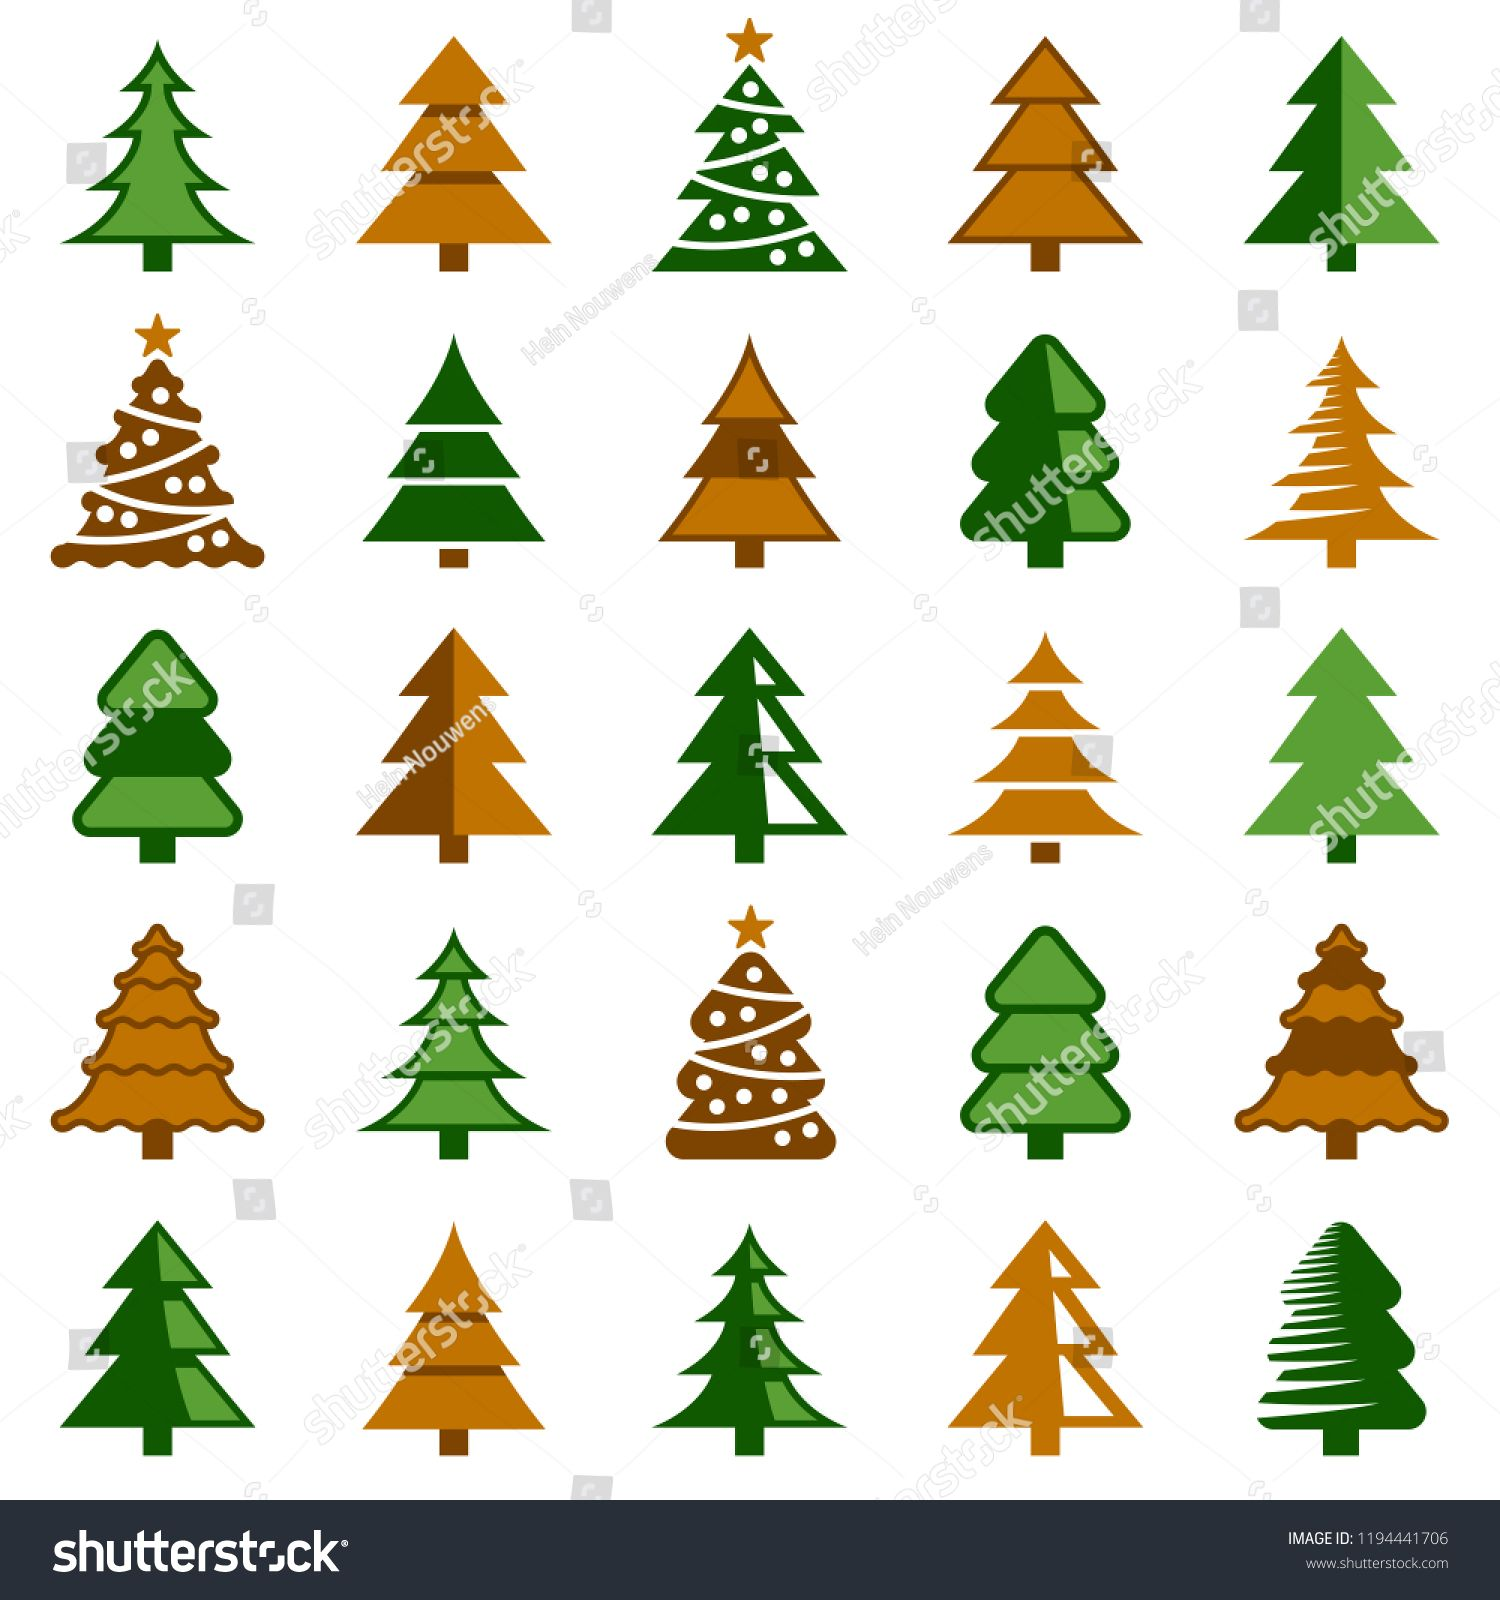 Christmas Tree Icon Collection Vector Color Illustration Icon Tree Christmas Collection Tree Icon Flower Icons Icon Collection